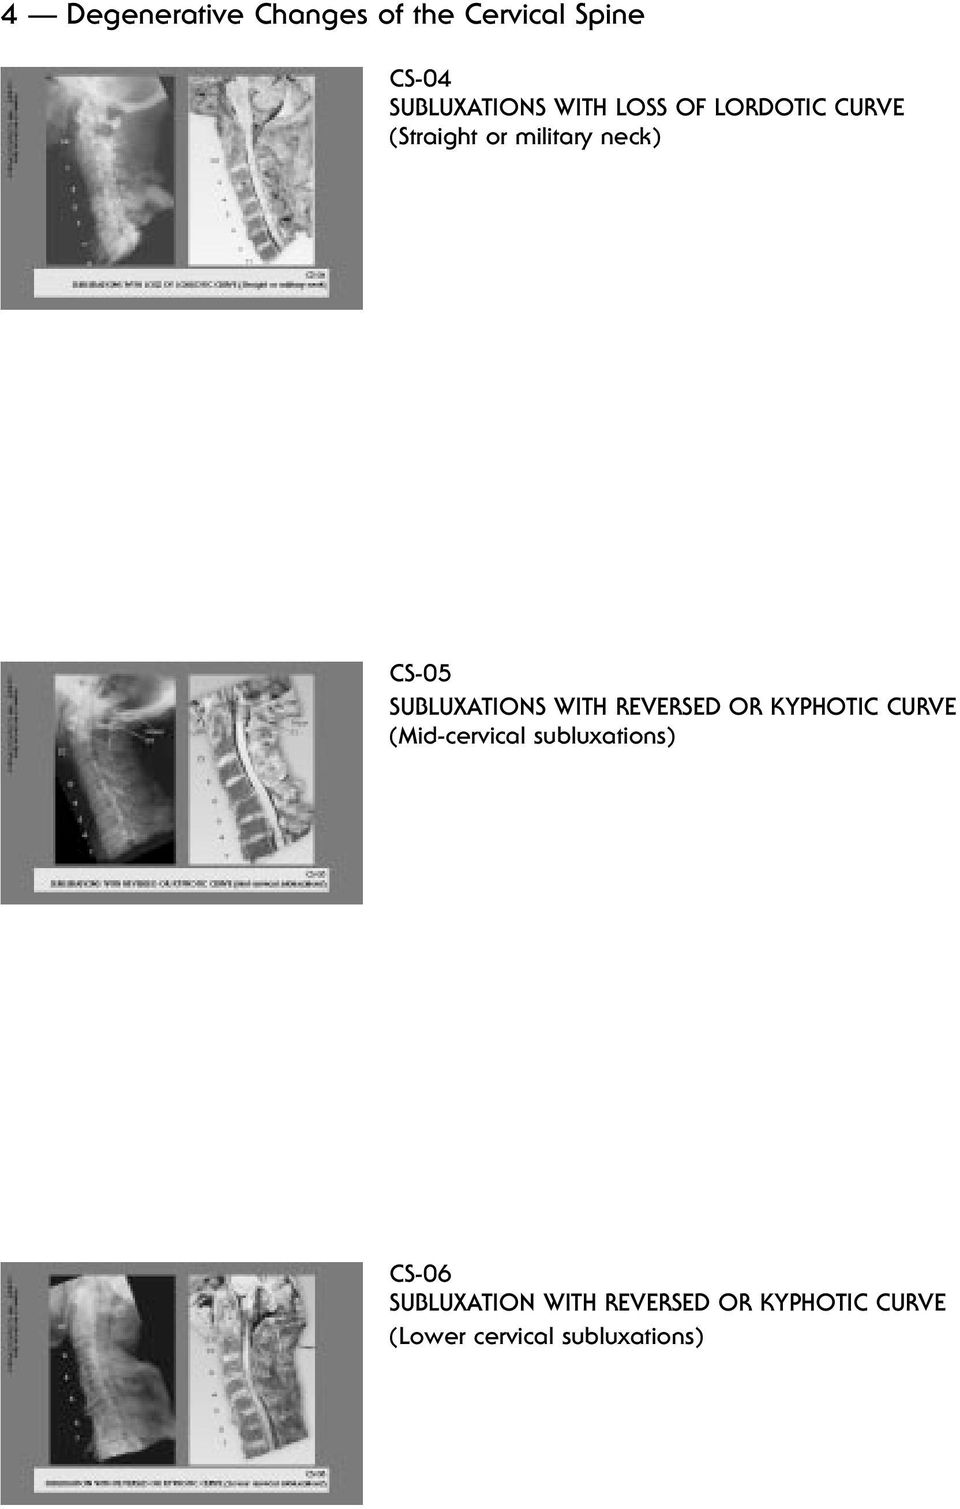 SUBLUXATIONS WITH REVERSED OR KYPHOTIC CURVE (Mid-cervical subluxations) CS-06